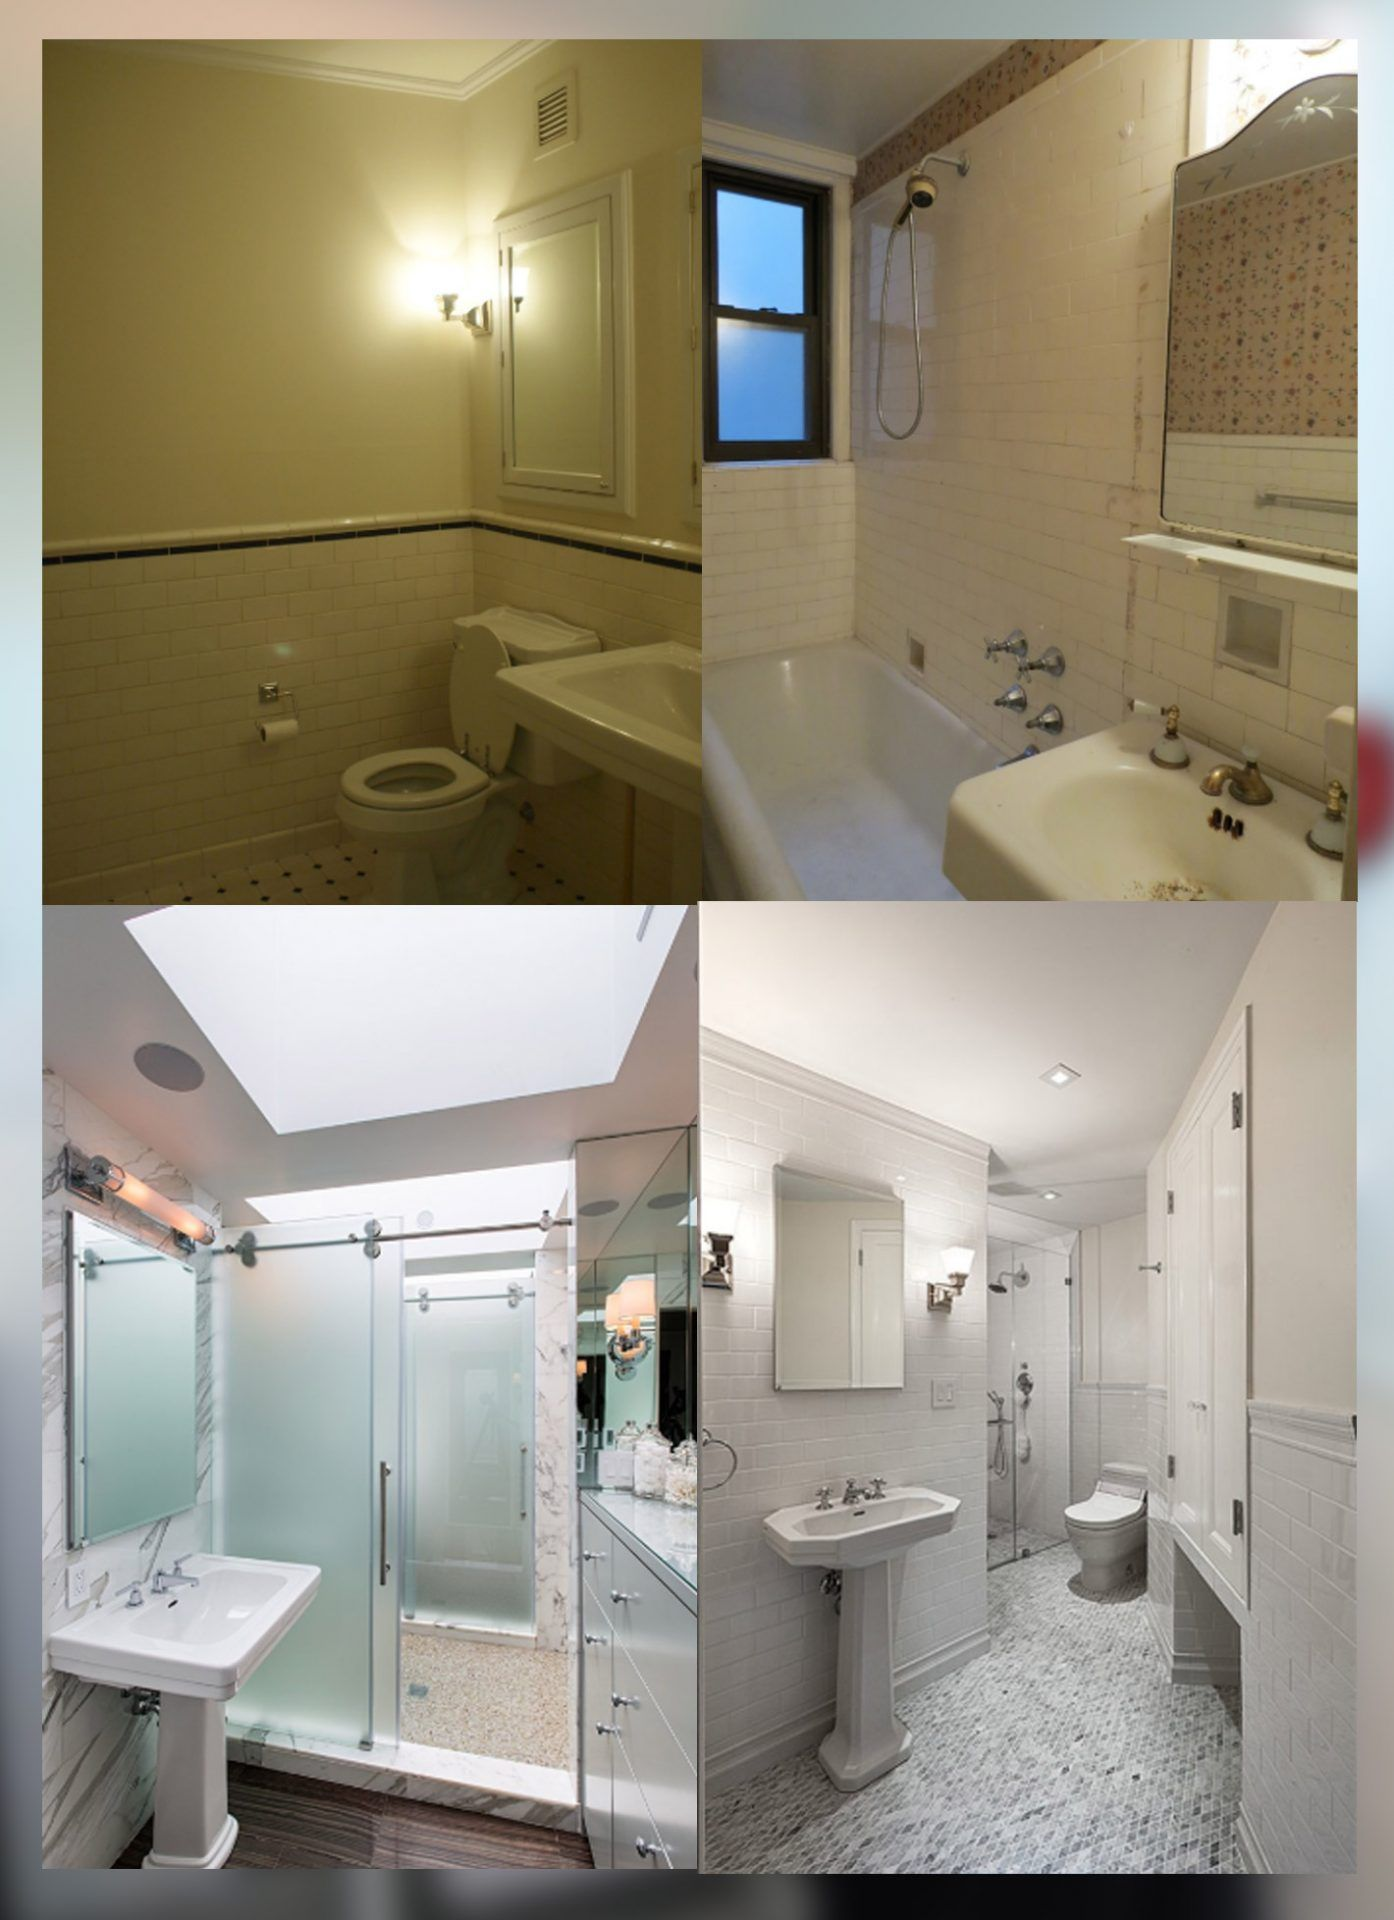 Tiny Bathroom Remodel Before And After In 2020 Bathrooms Remodel Bathroom Remodel Photos Tiny Bathroom